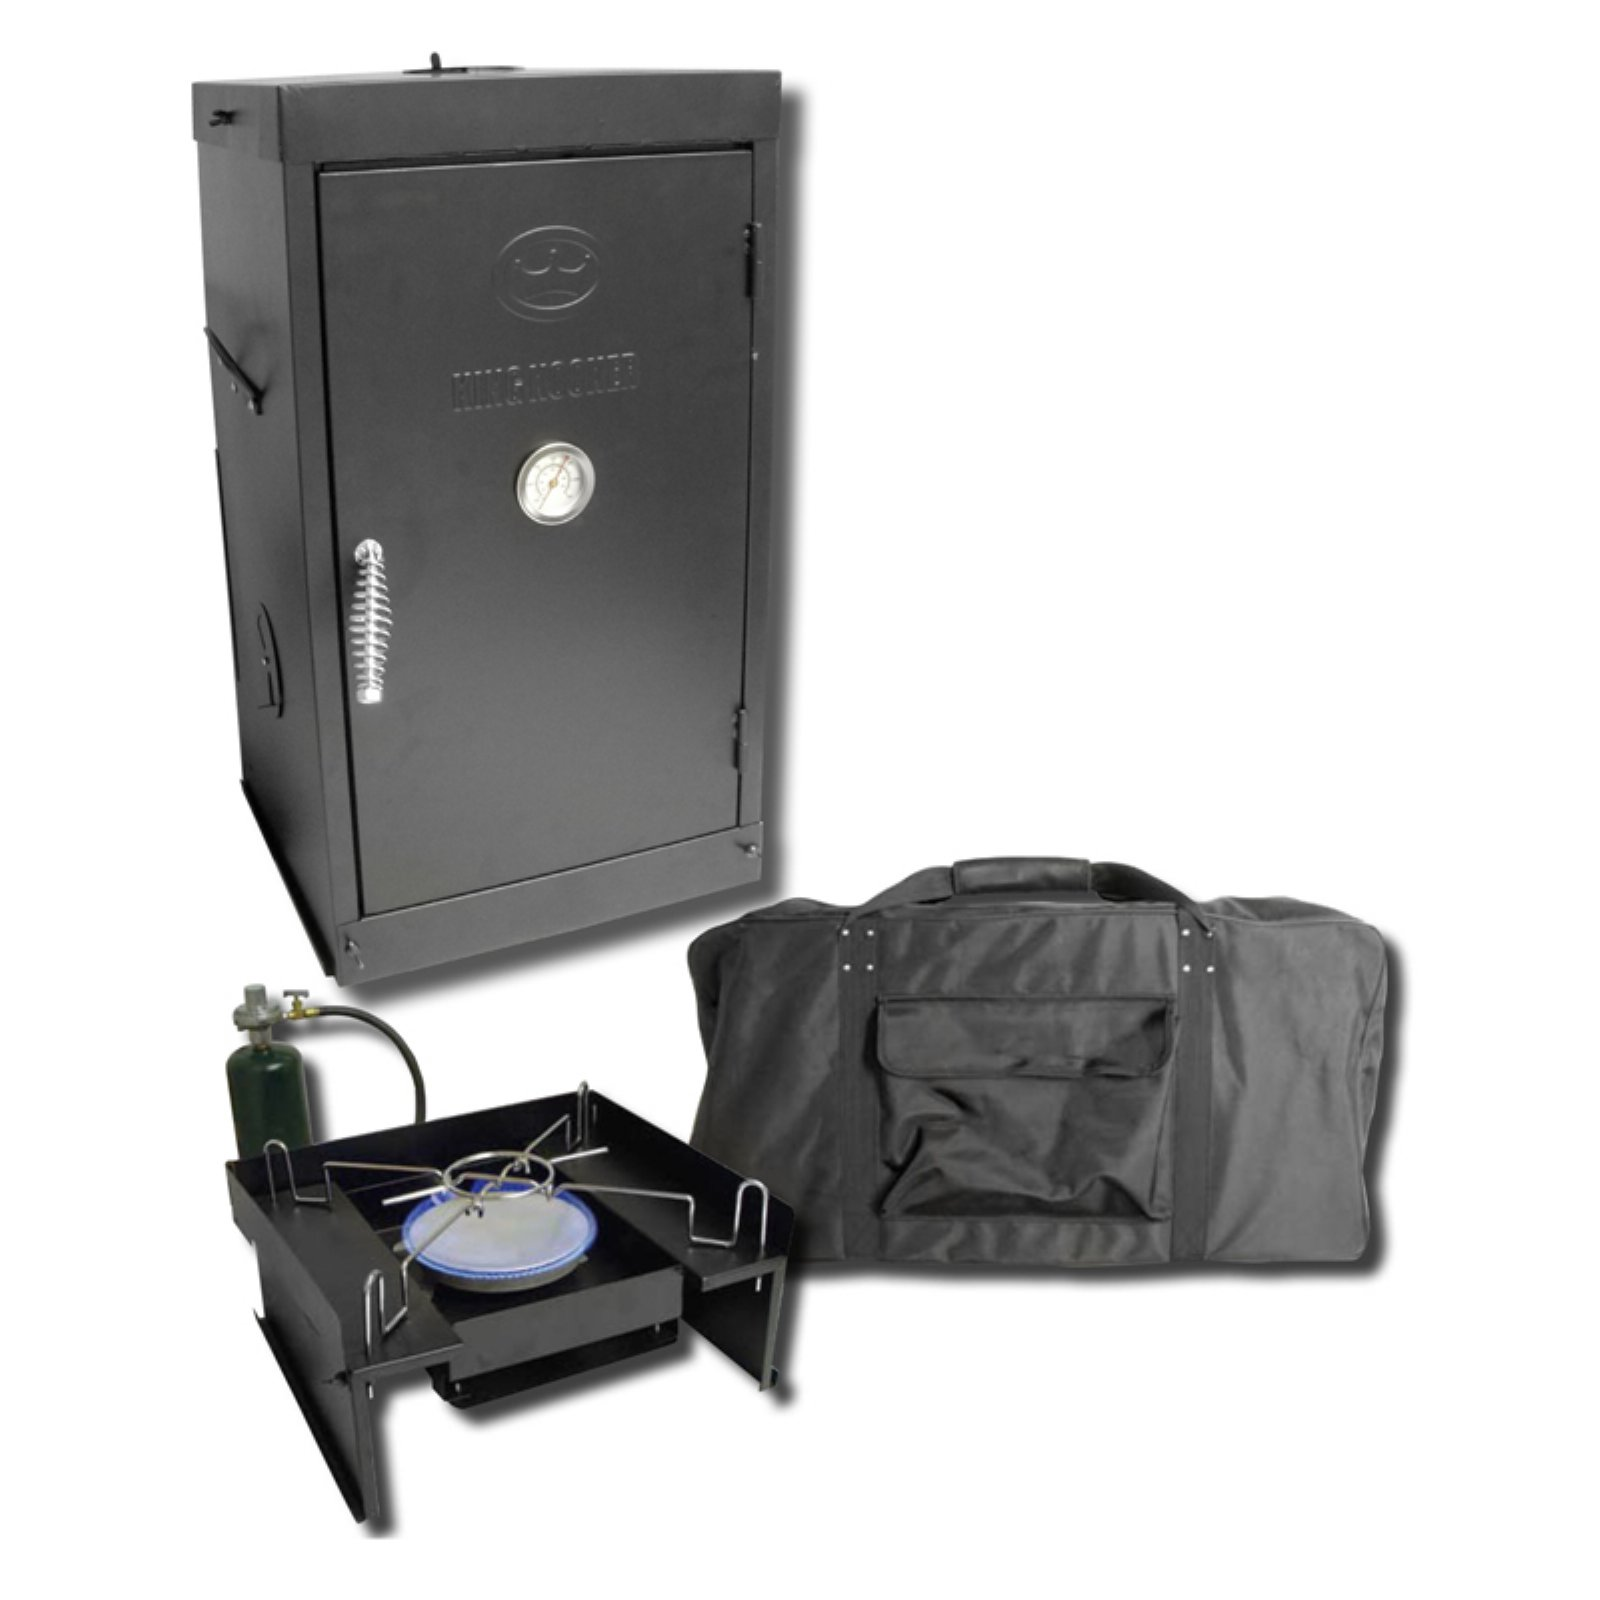 King Kooker Outdoor Chef's Smoker, Oven and Stove Propane Outdoor Package